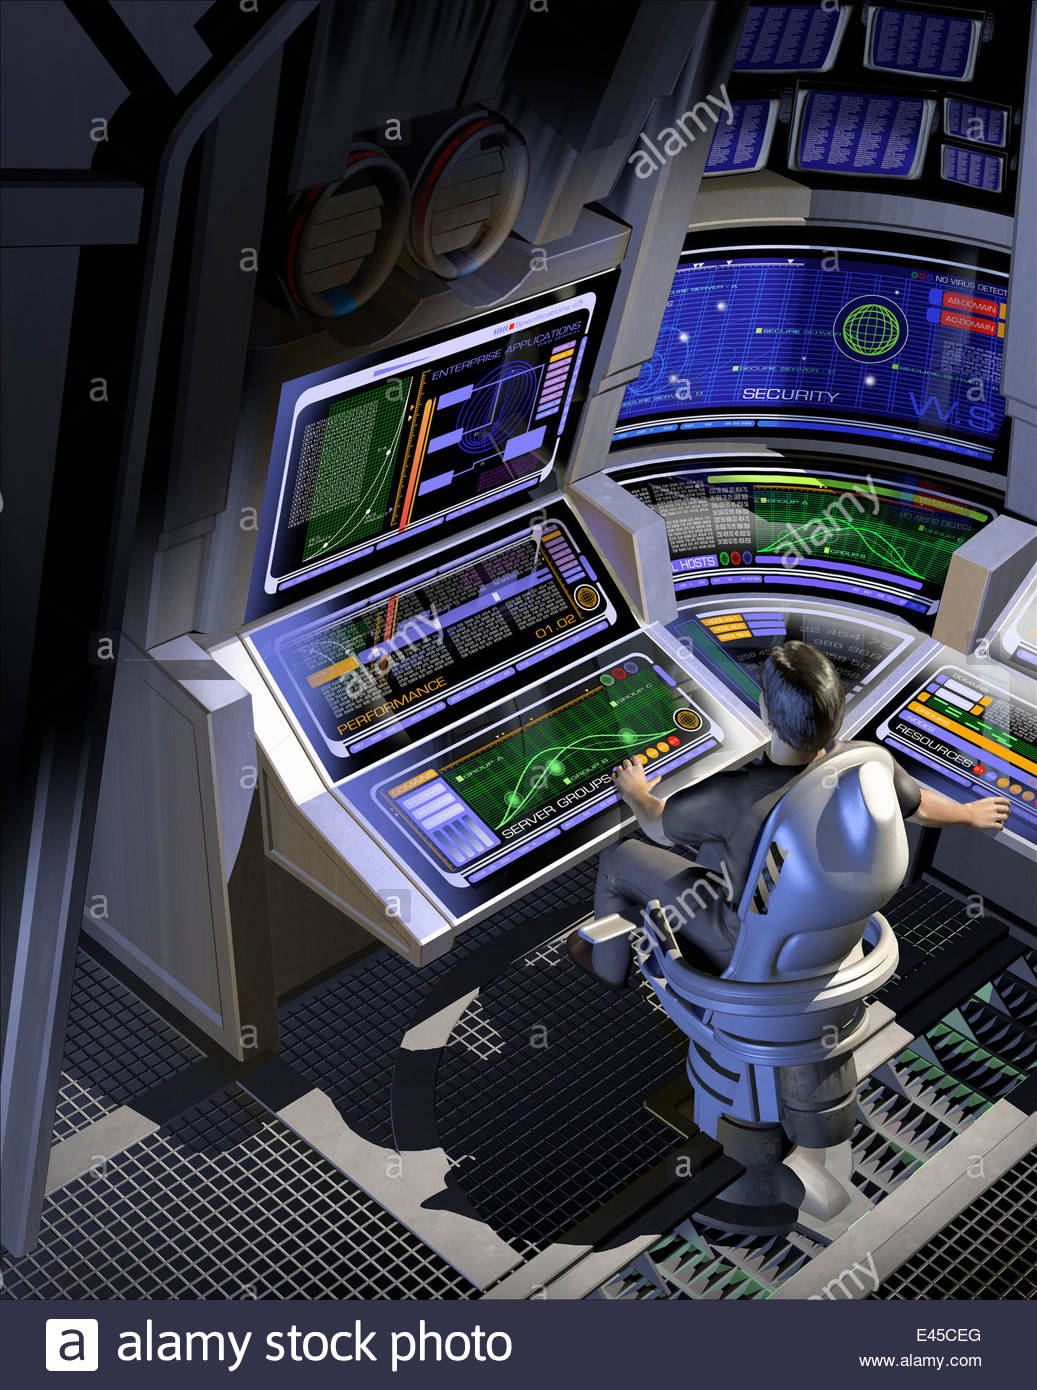 Man working at control panels in futuristic control room - Stock Image